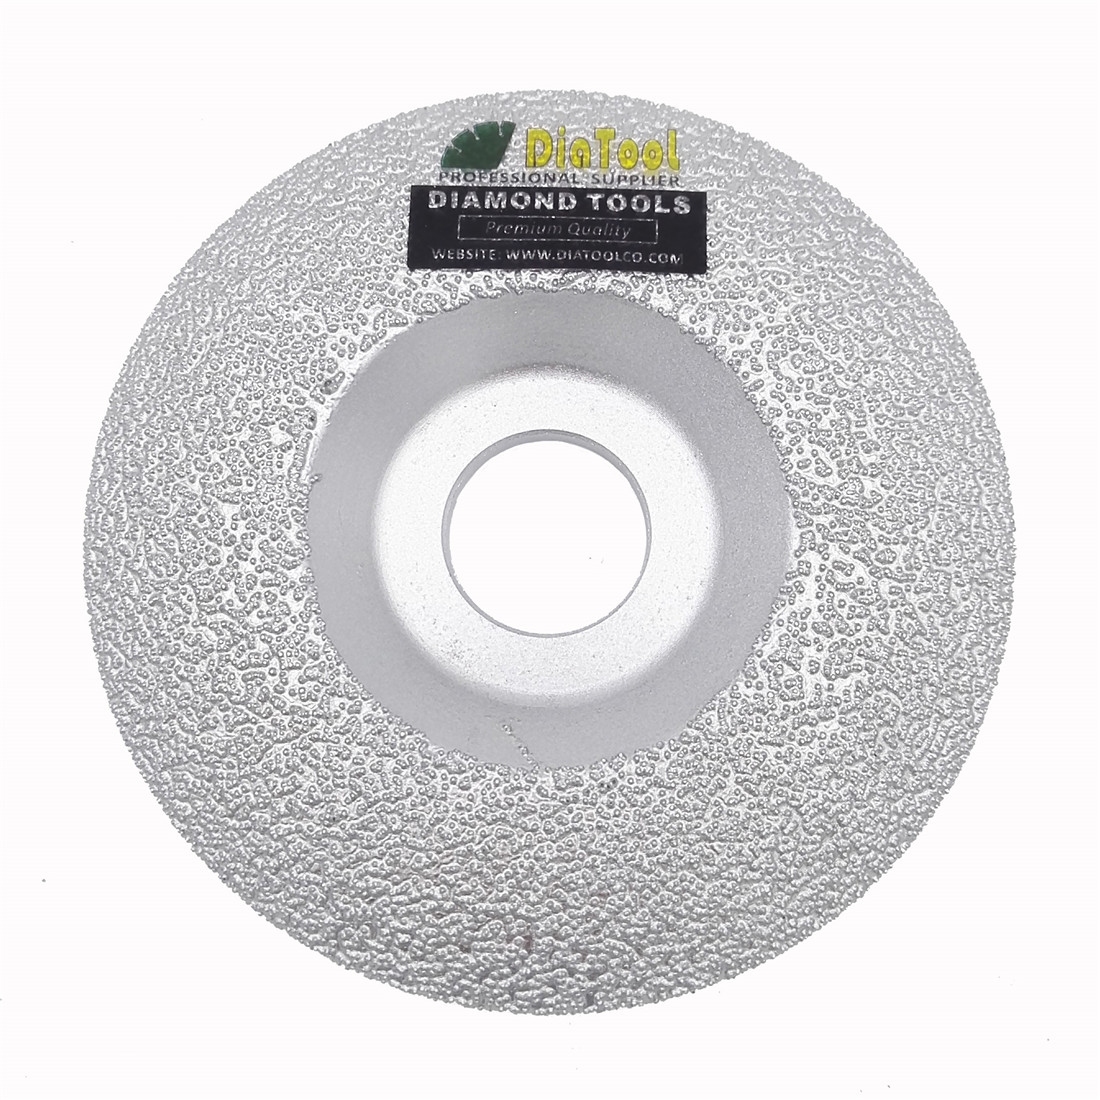 DIATOOL Vacuum Brazed Diamond Grinding Cup Wheel Diameter 4